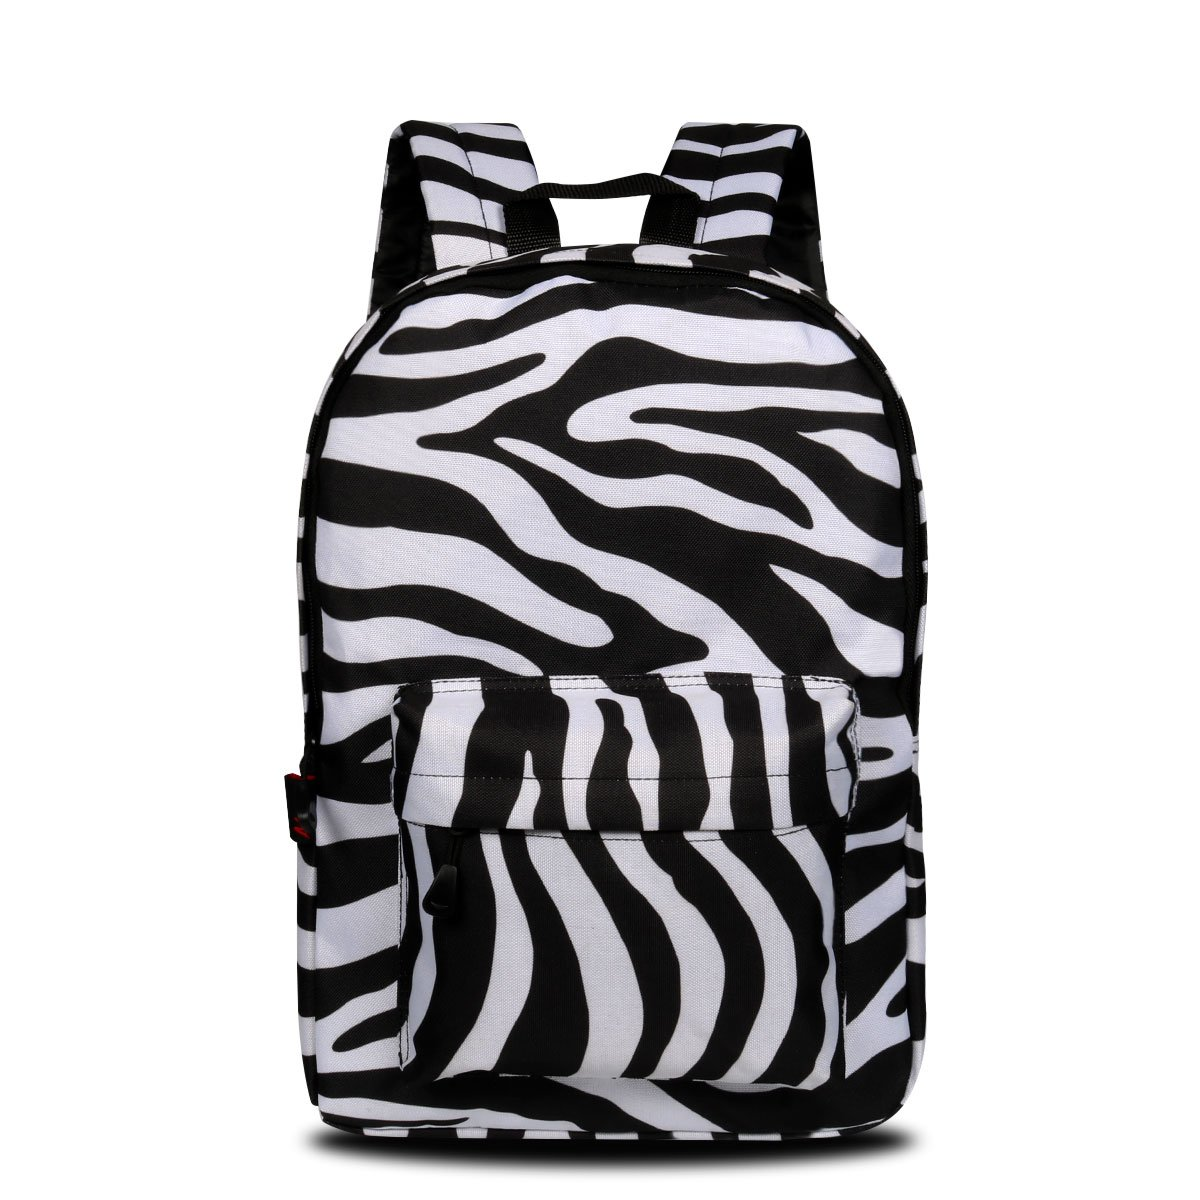 This gorgeous zebra print backpack certainly has a touch of the 80s about it - available in six designs